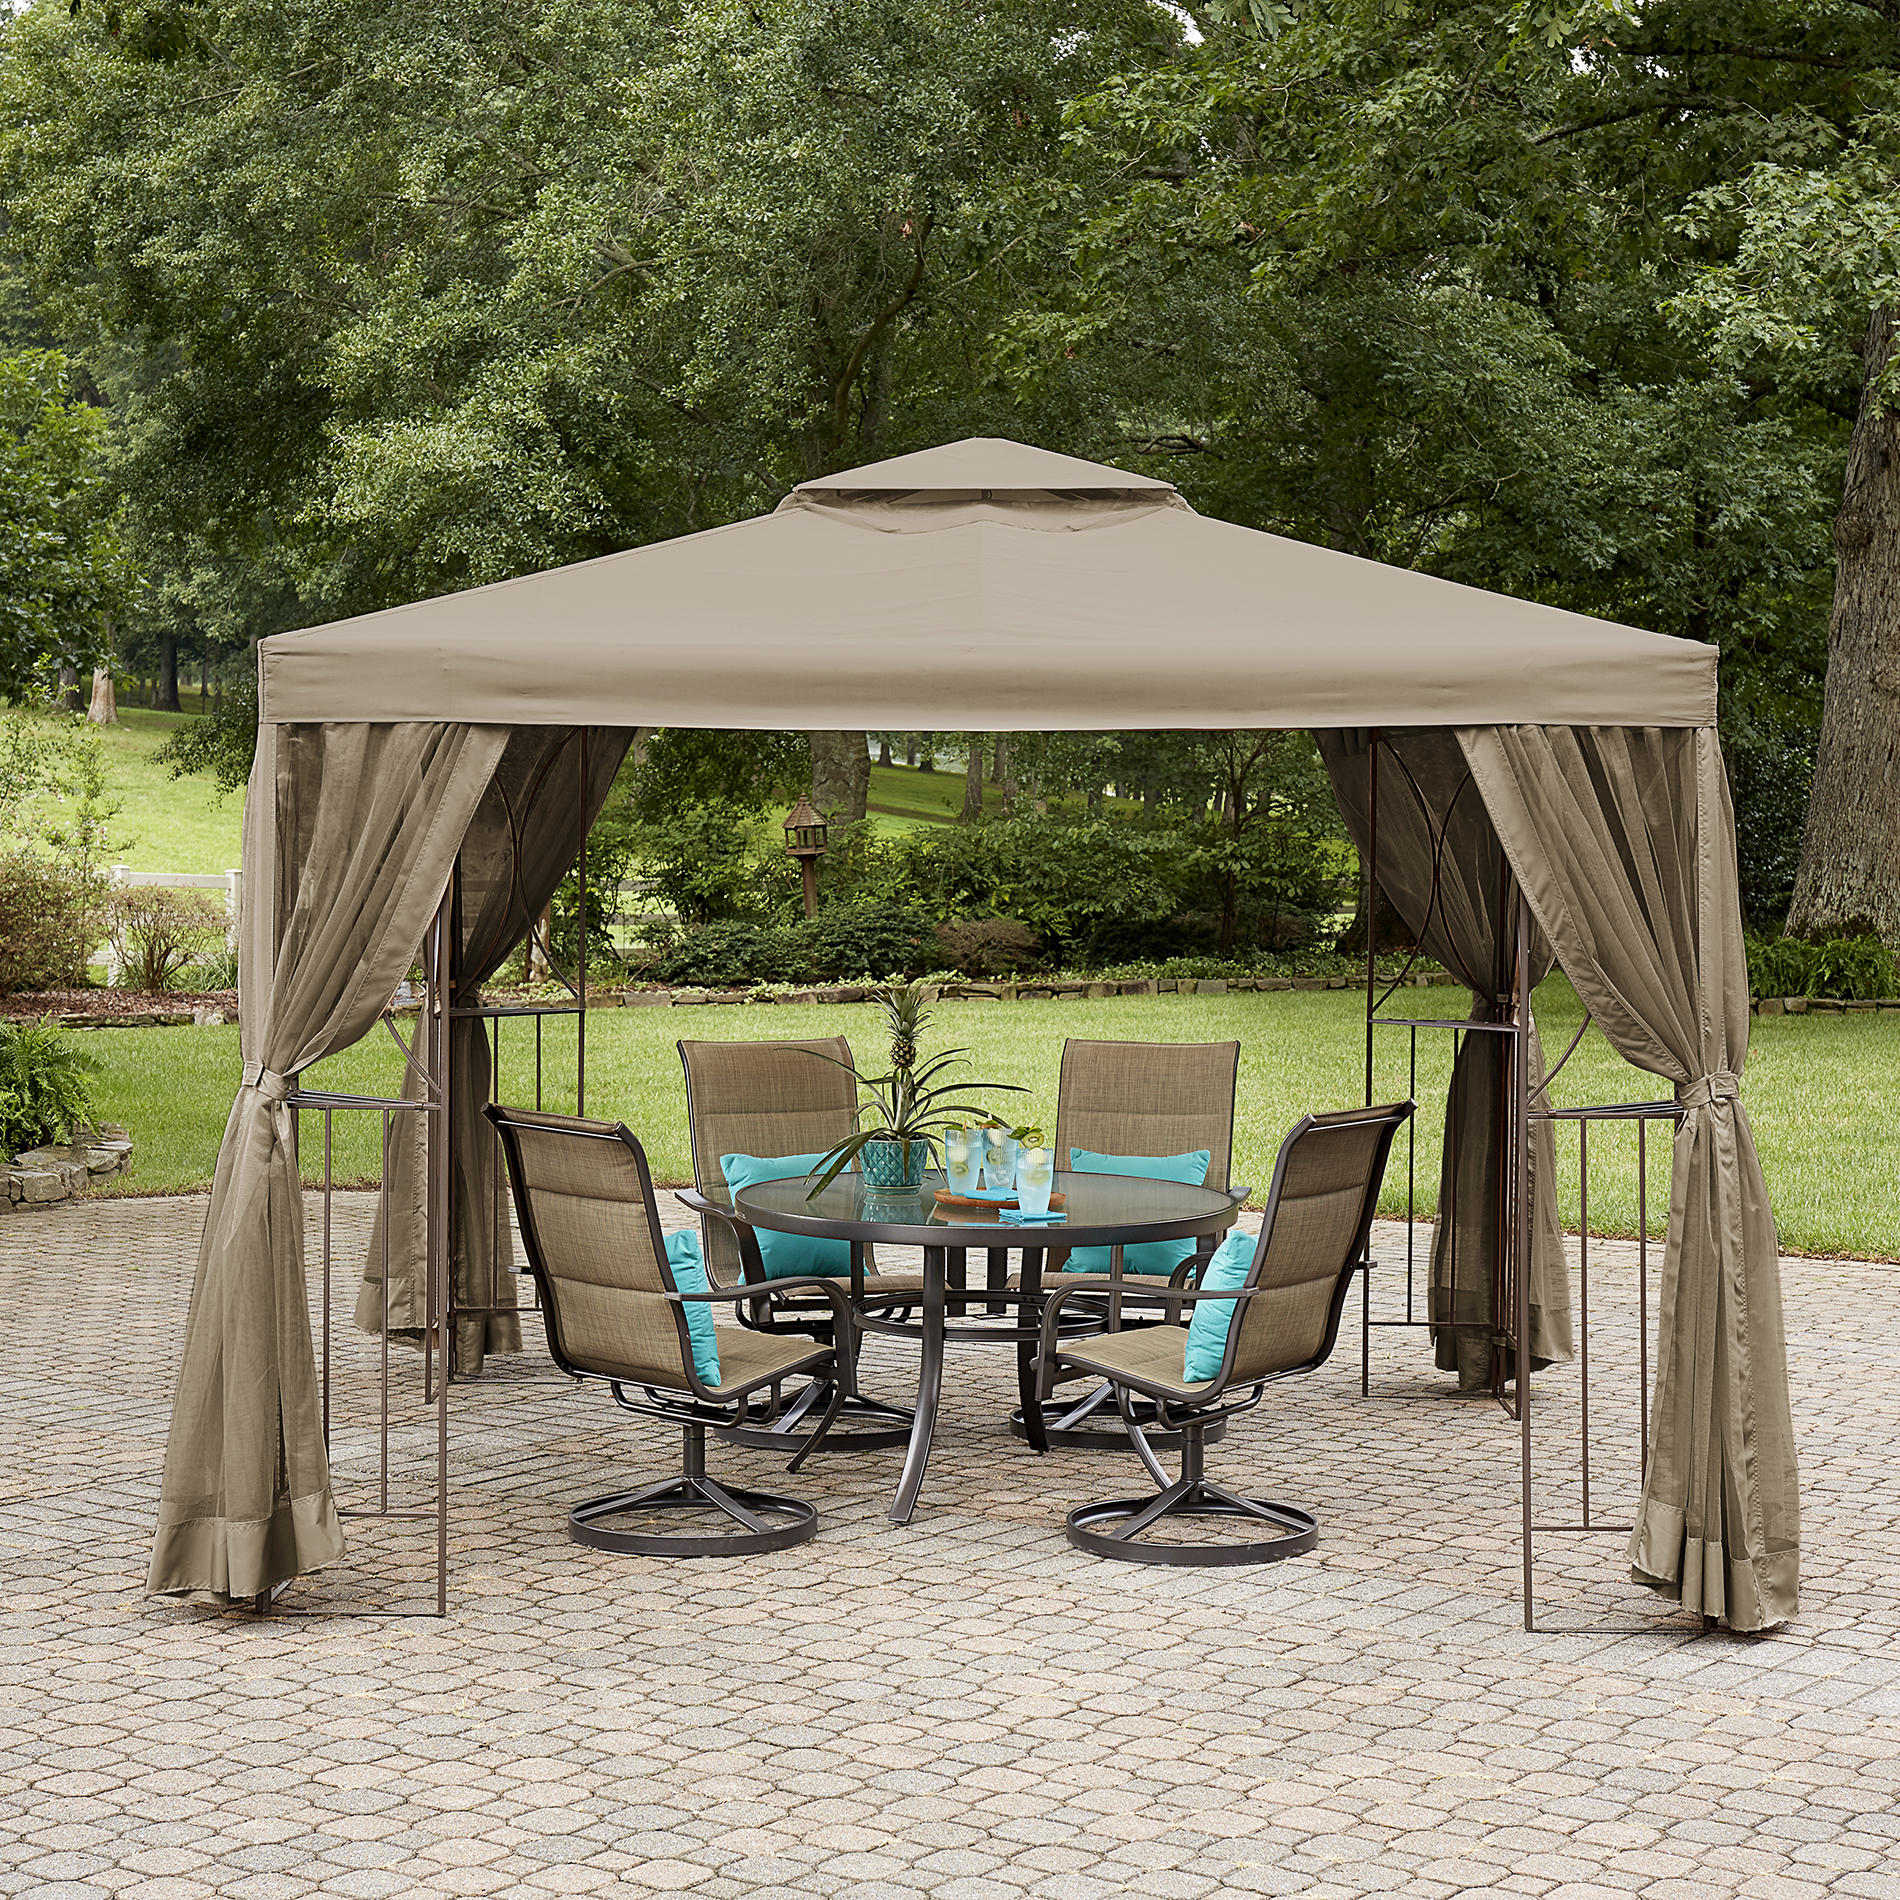 Garden Oasis Lakeville 10' X Canopy Gazebo With Insect Netting Limited Availability